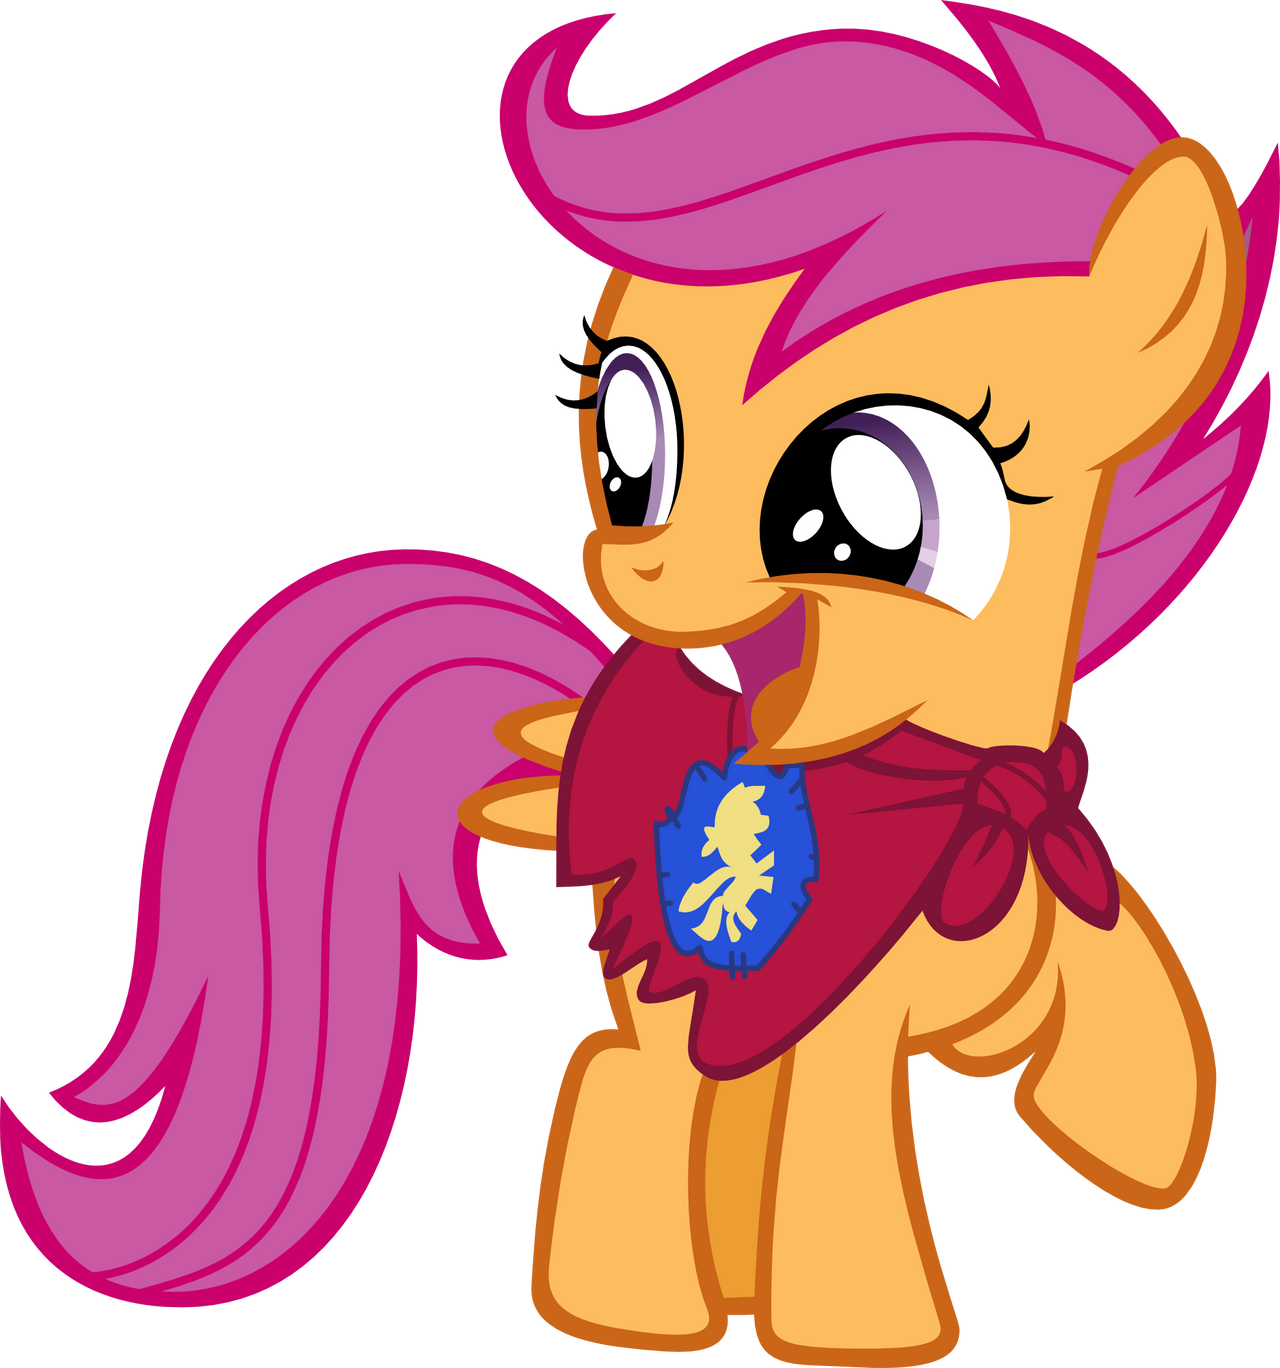 Scootaloo Ready Friendship Is Magic Cast Canterlot My Little Pony Community And Role Play Find gifs with the latest and newest hashtags! canterlot